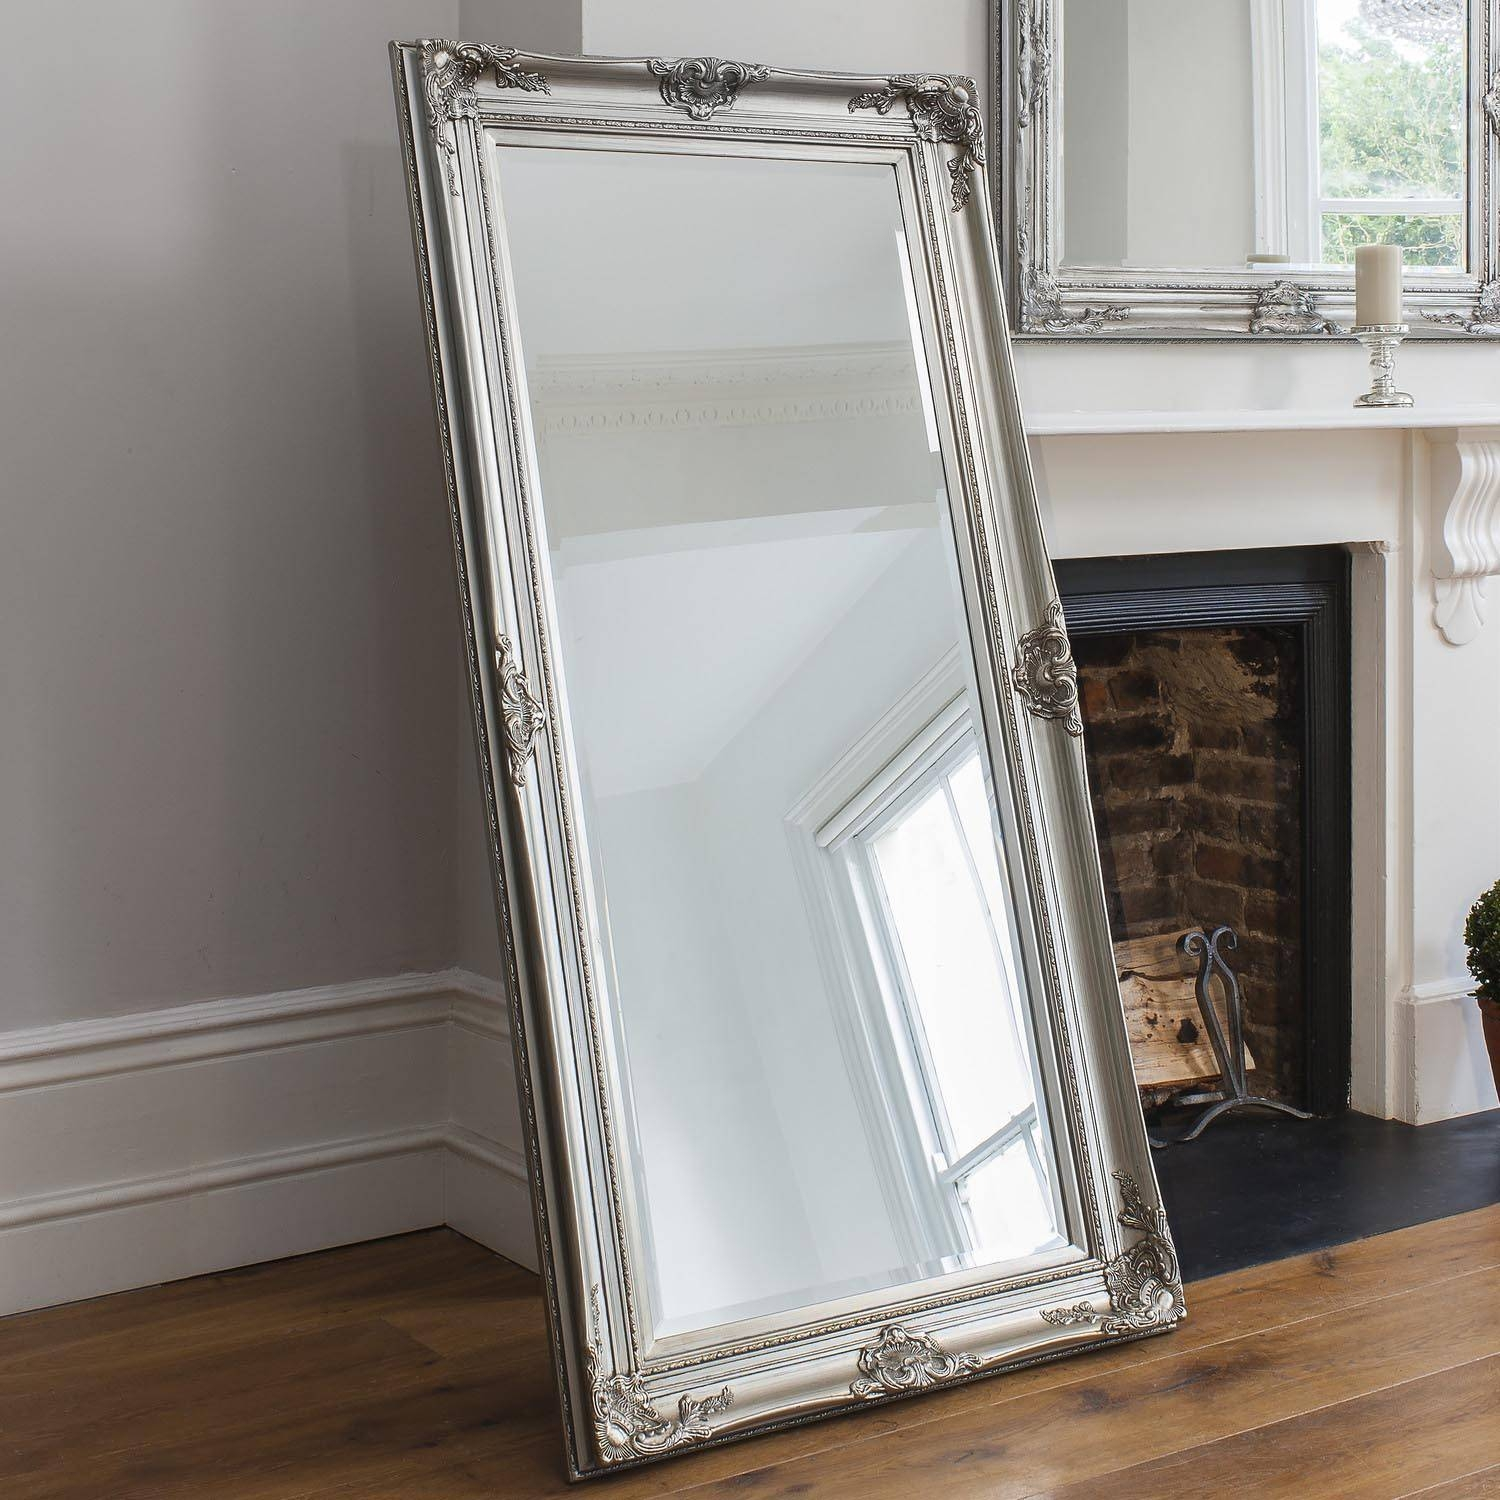 Extra Large Floor Standing Mirrors | Floor Decoration within Large Floor Standing Mirrors (Image 9 of 25)